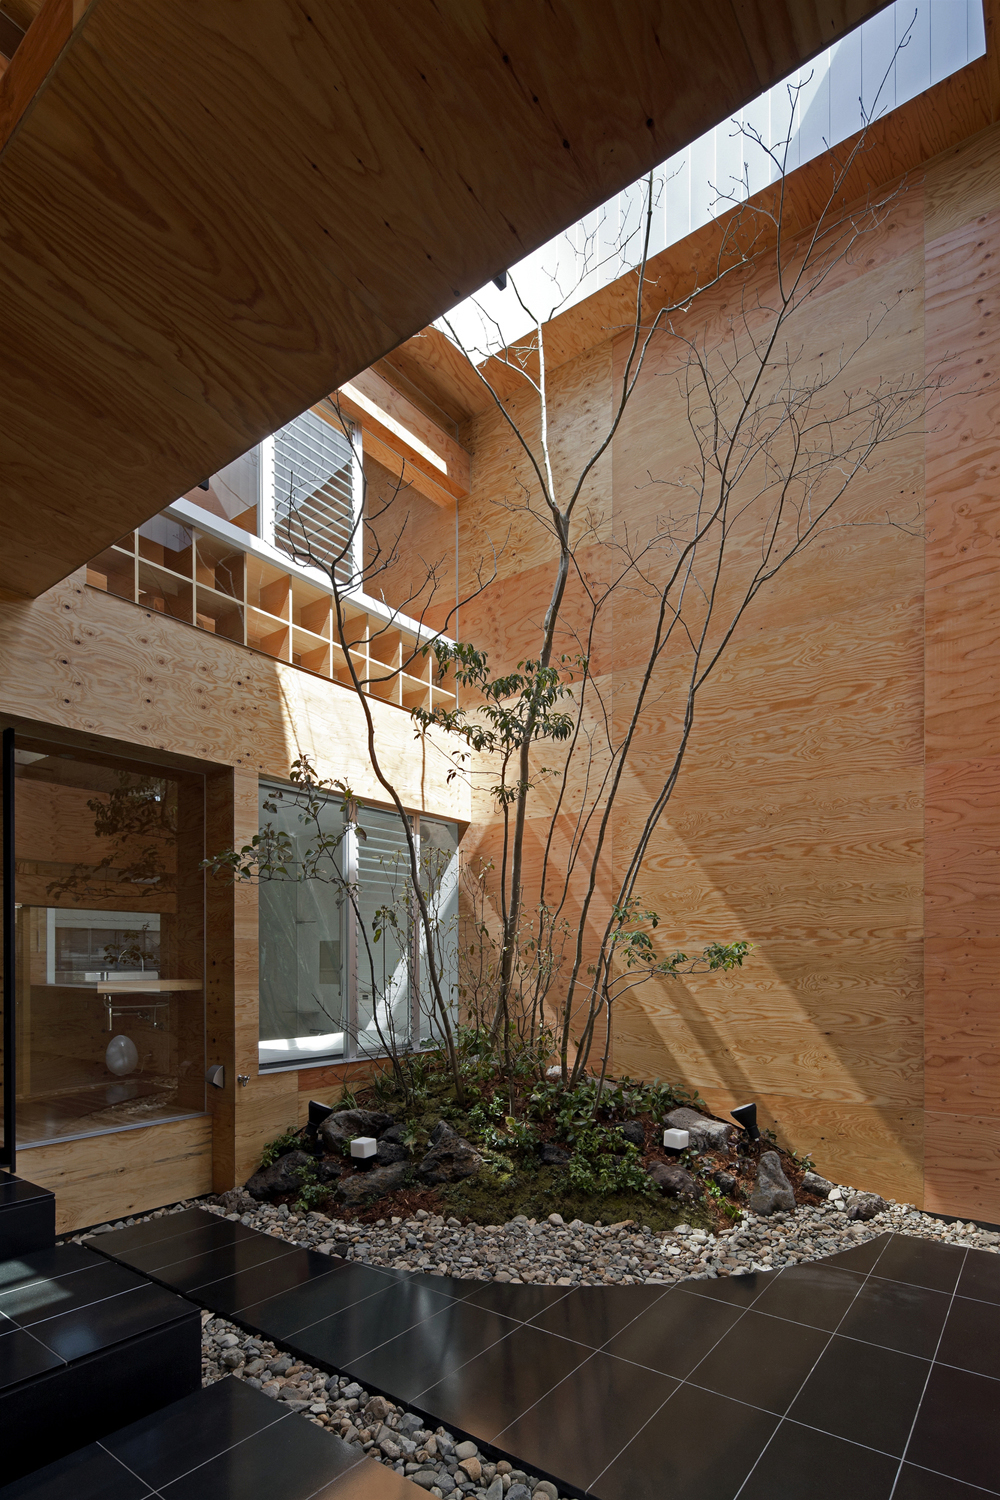 the-tree-mag-machi-building-by-uid-architects-40.jpg